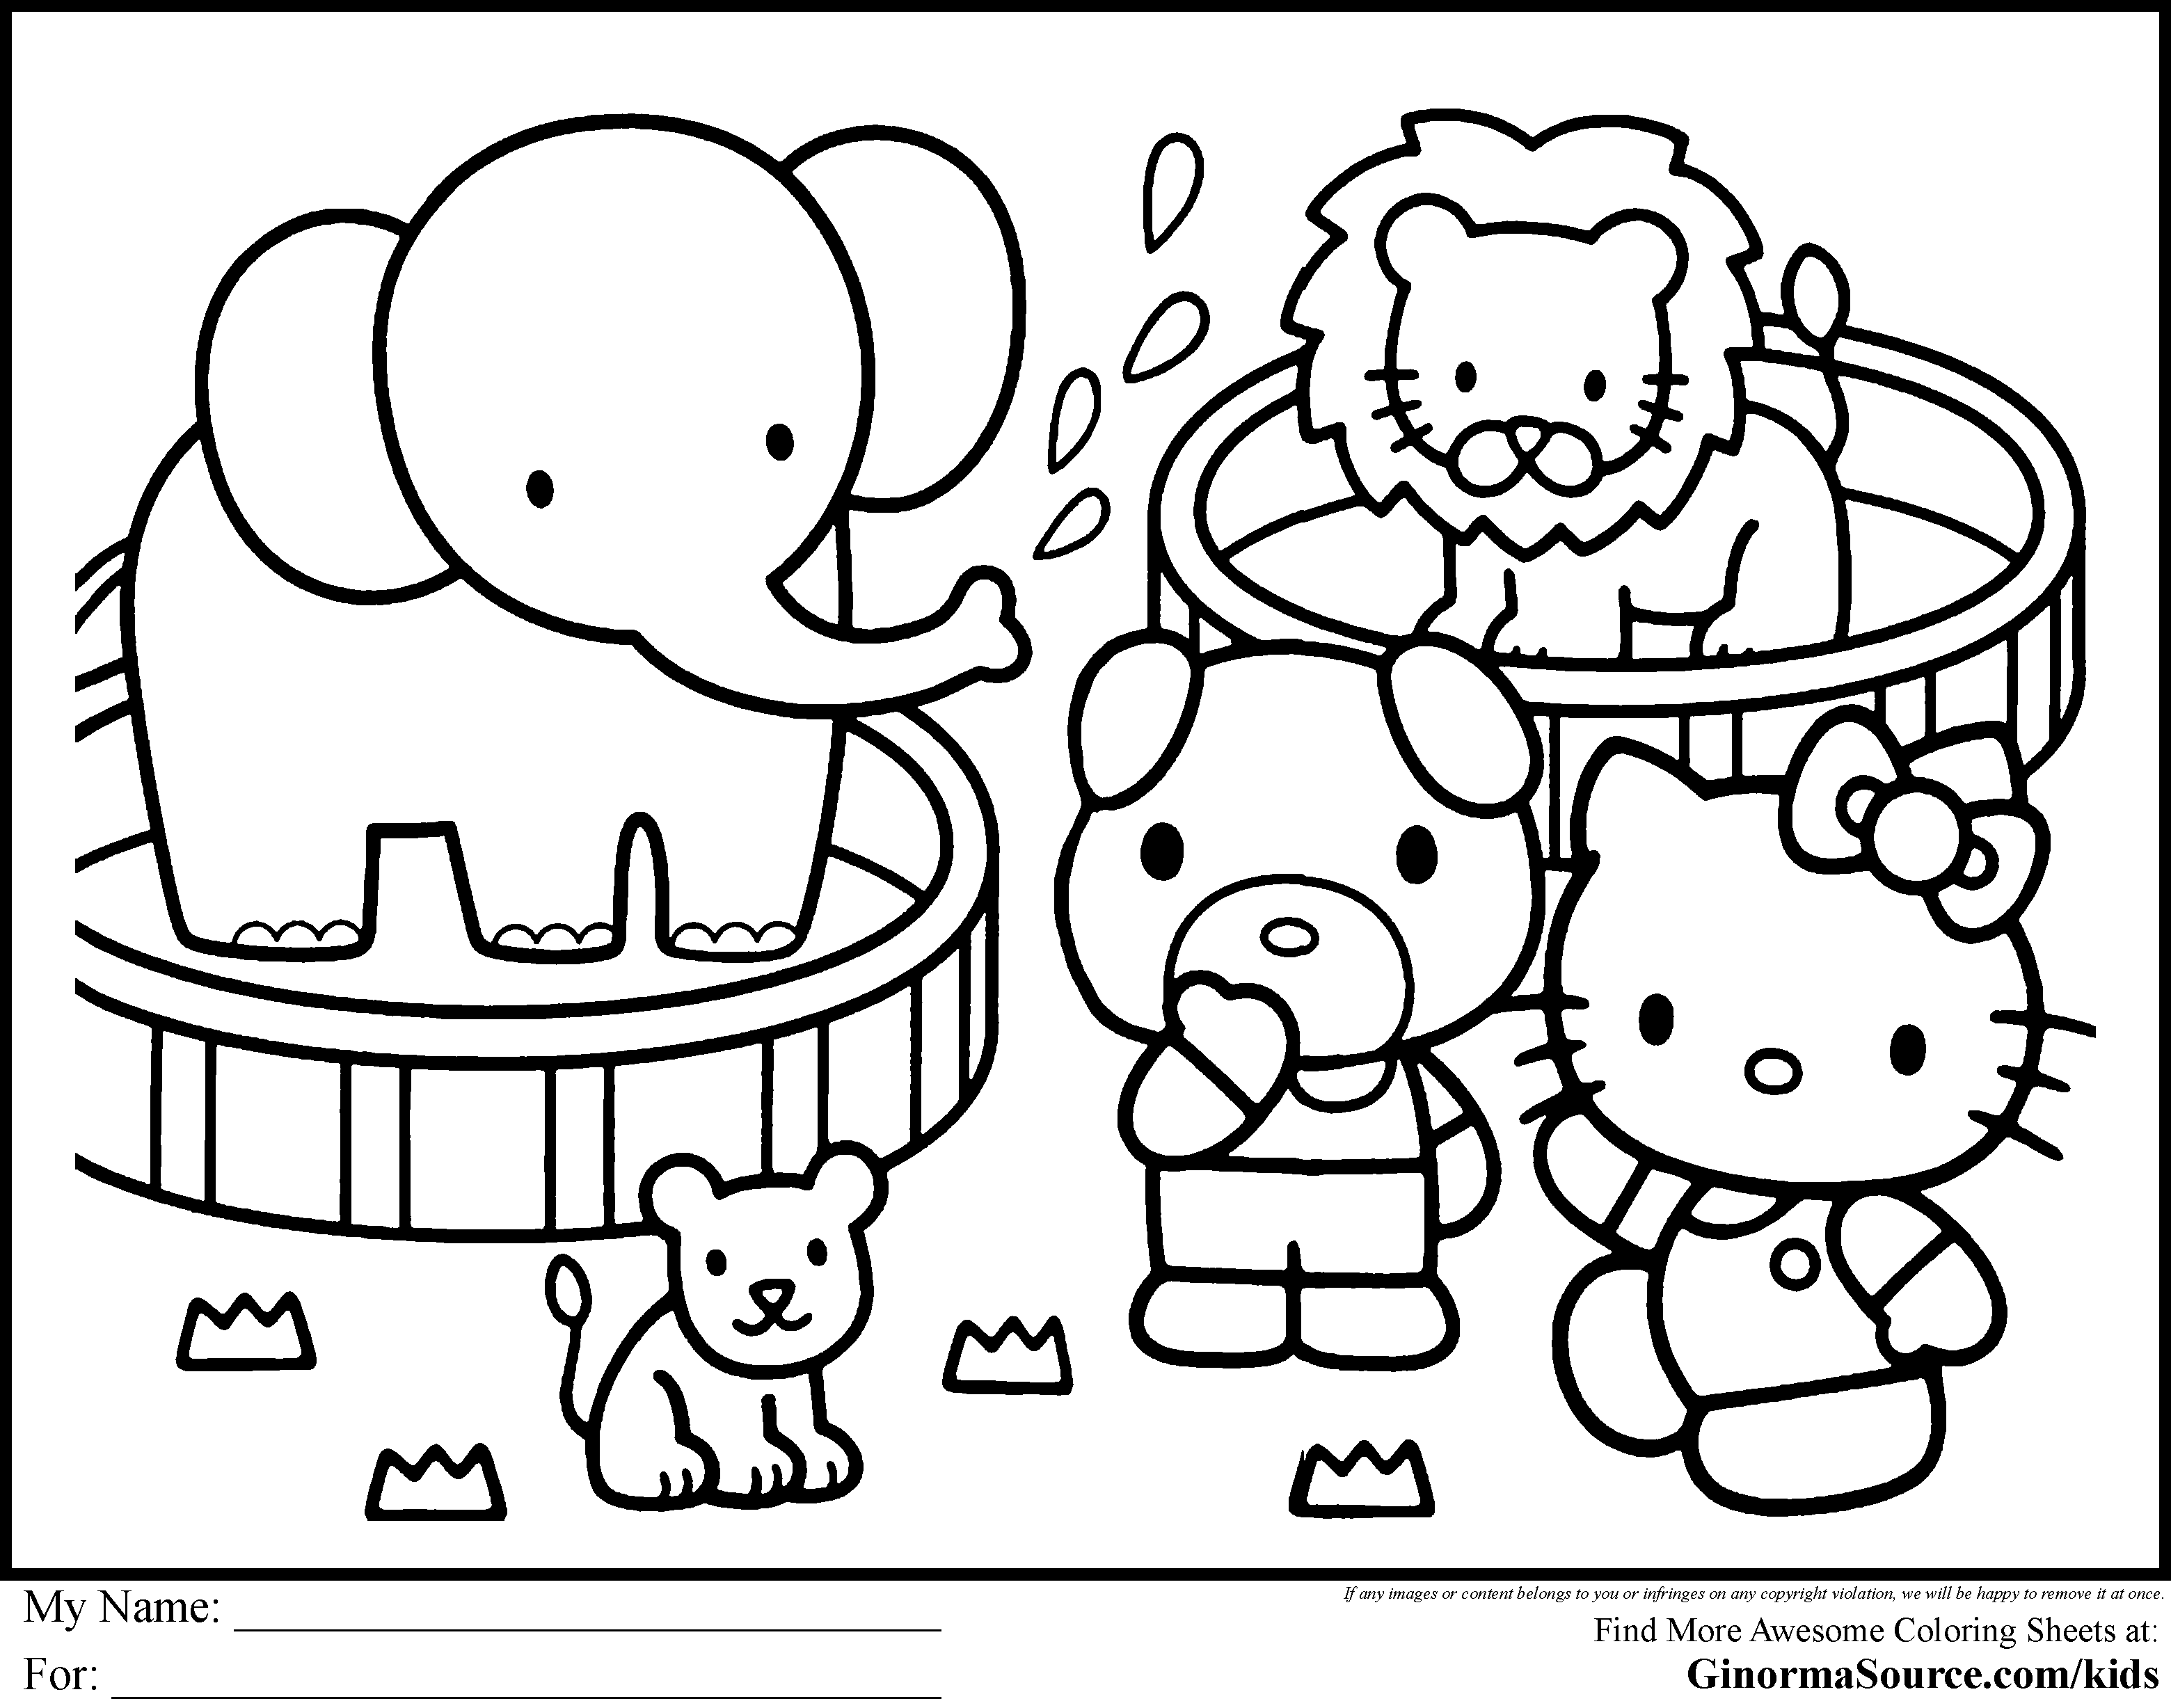 Printable coloring pages awesome name - Find This Pin And More On Kids Coloring By Mirkajaneckova